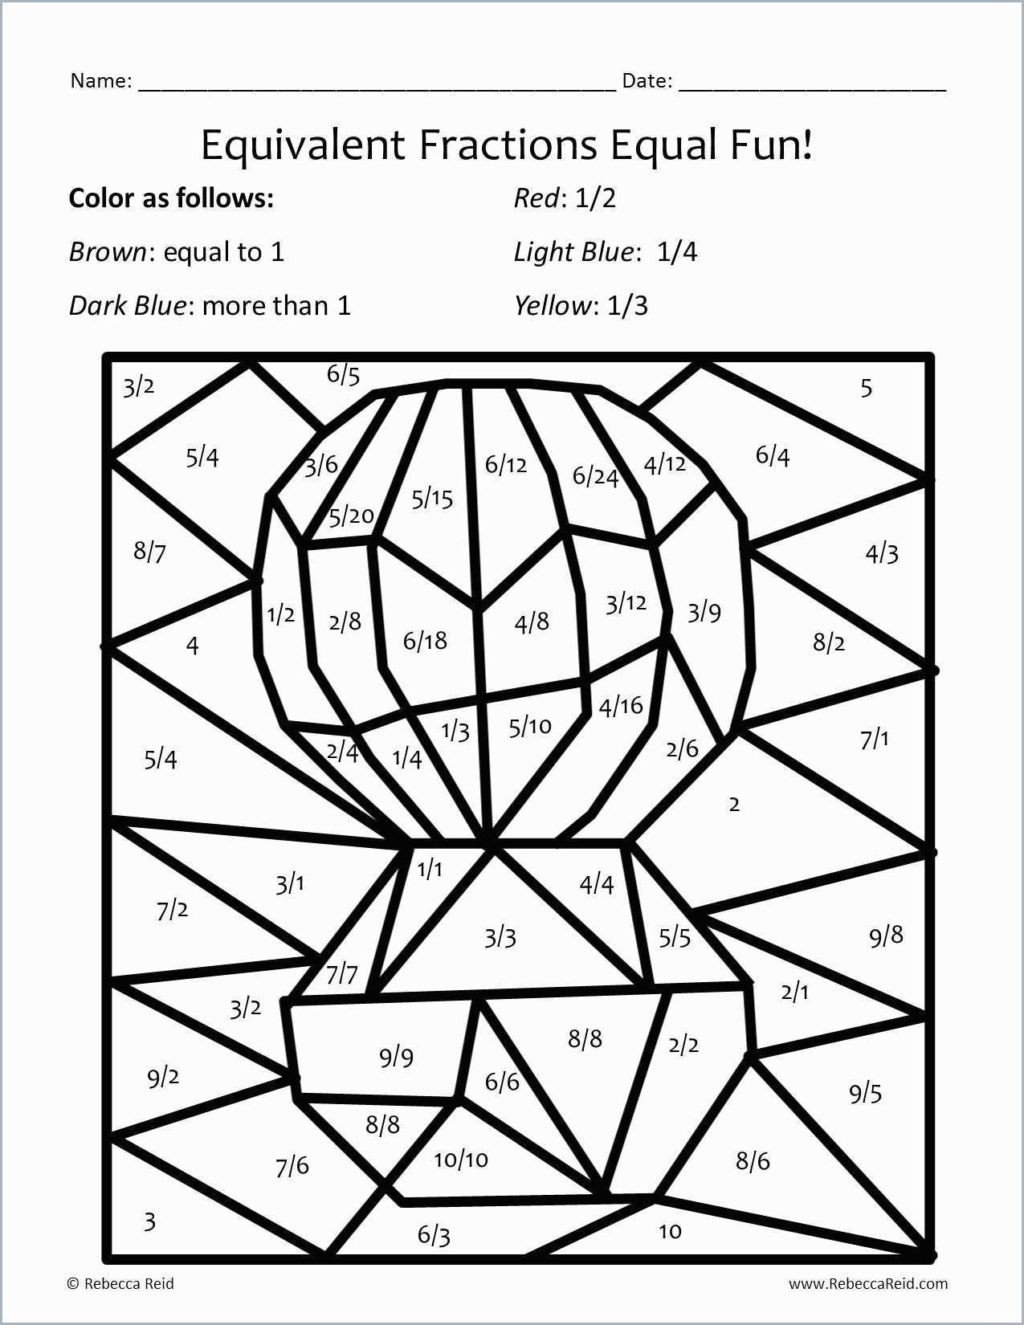 Free First Grade Fraction Worksheets Equivalent Fraction Coloring Sheets 4th Grade Fun 1st Free